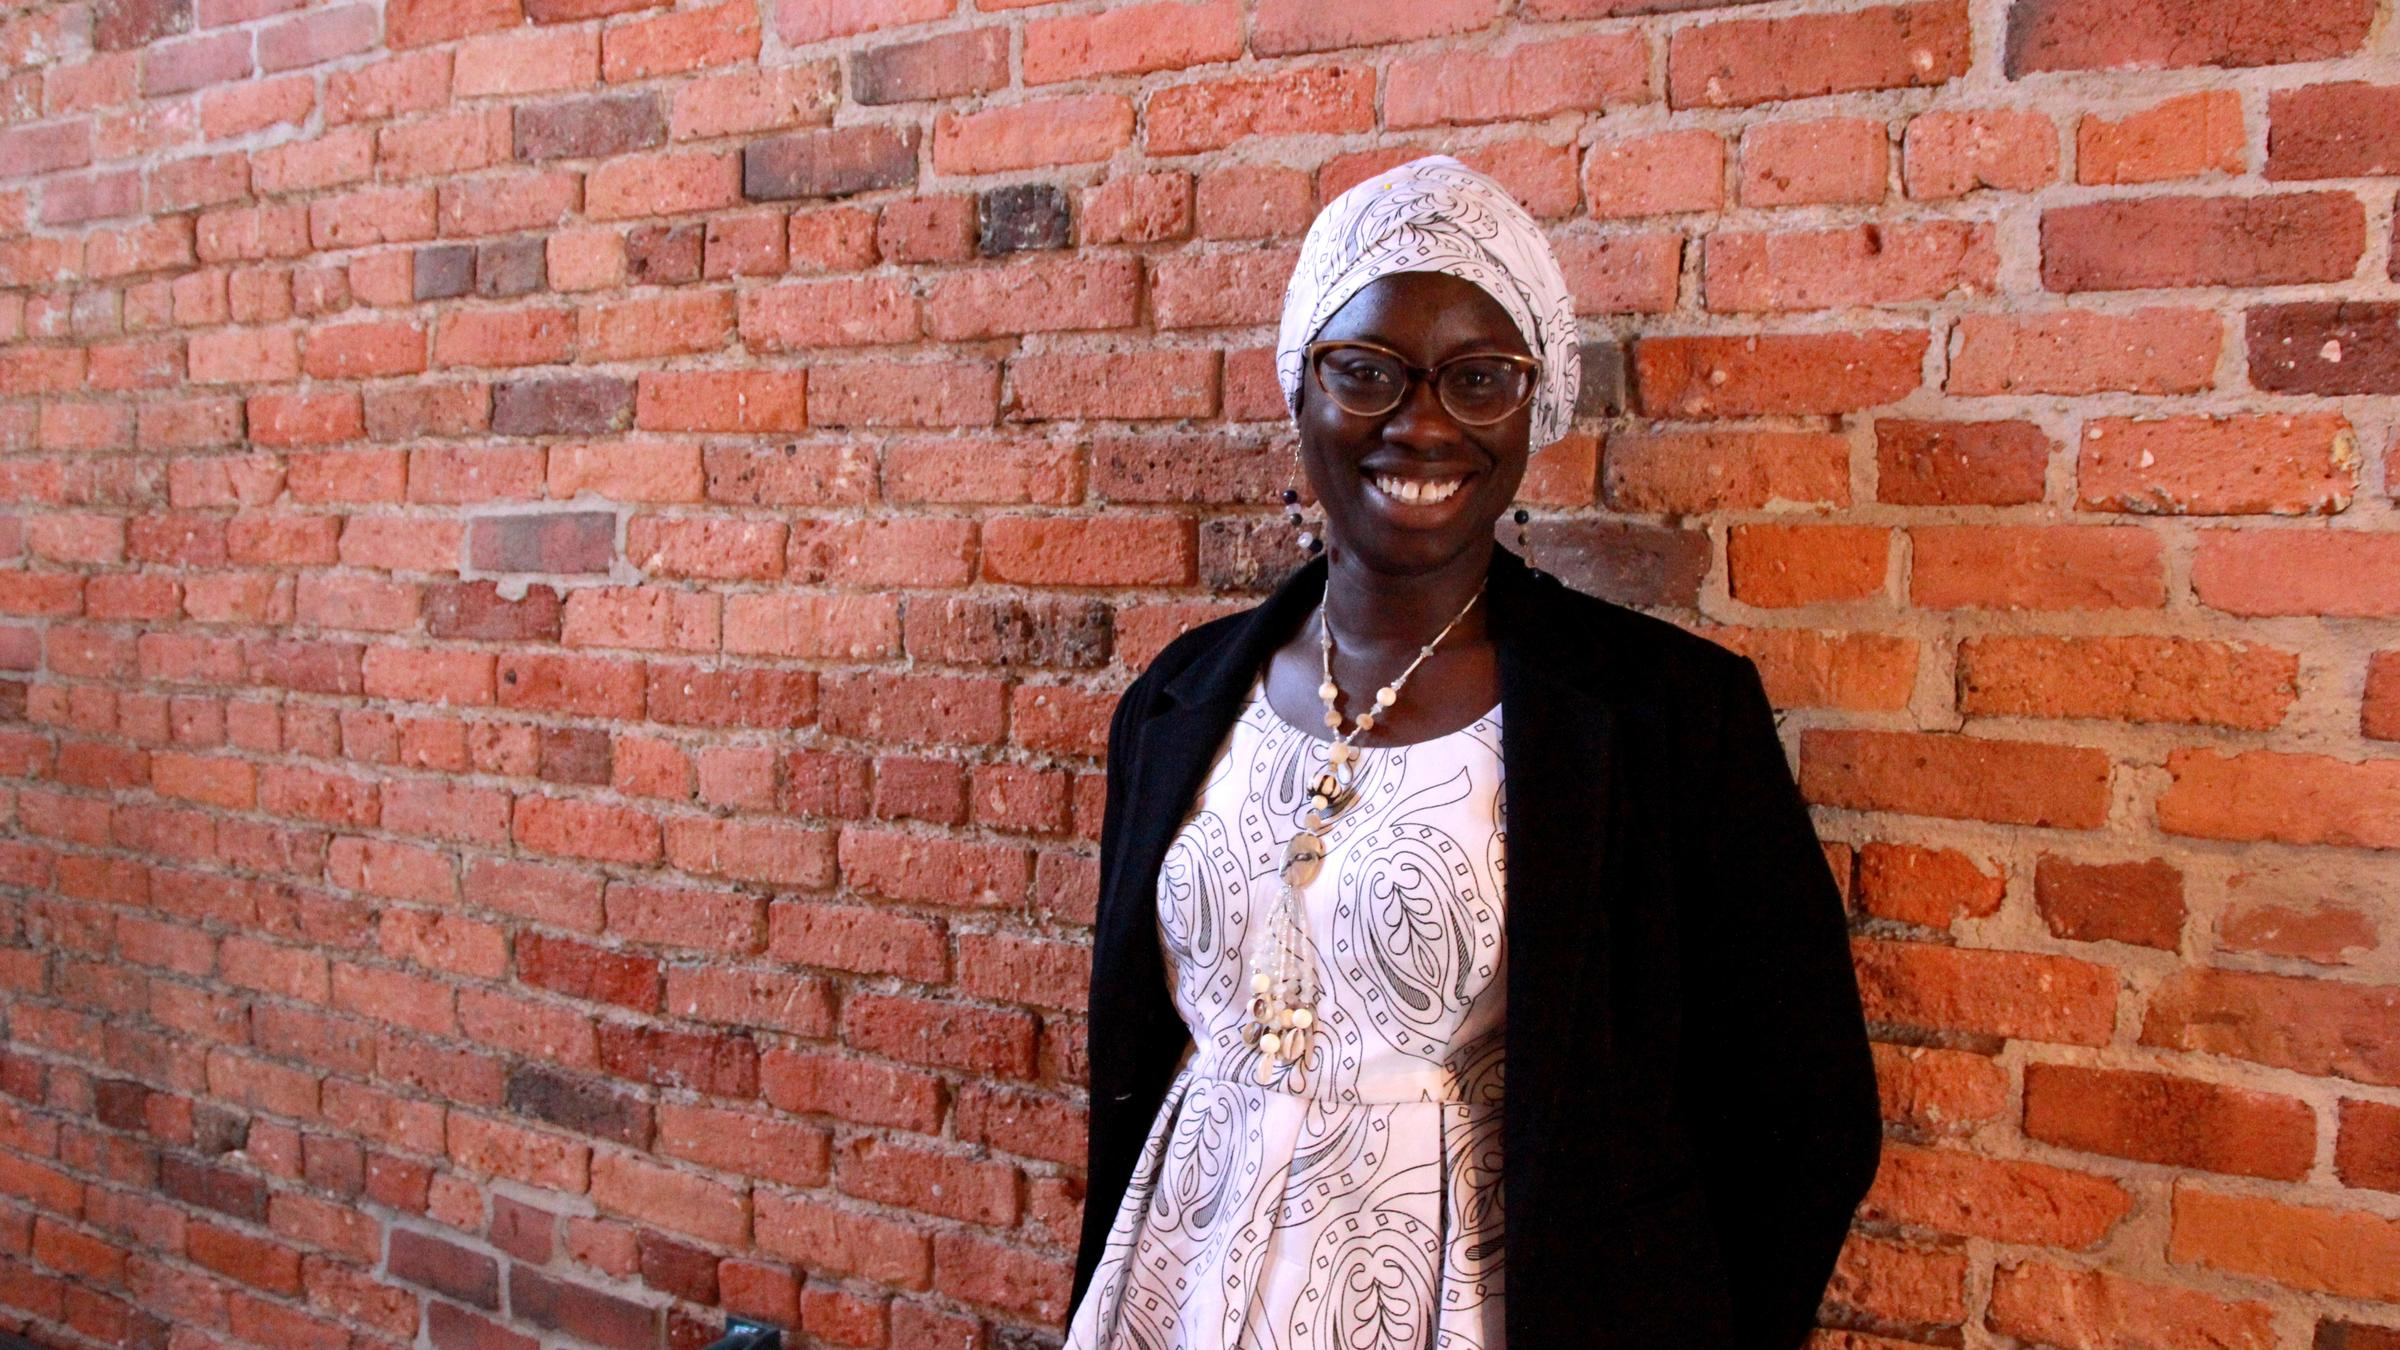 ad61c4912572 Senegalese mother aims to empower African immigrant families in ...